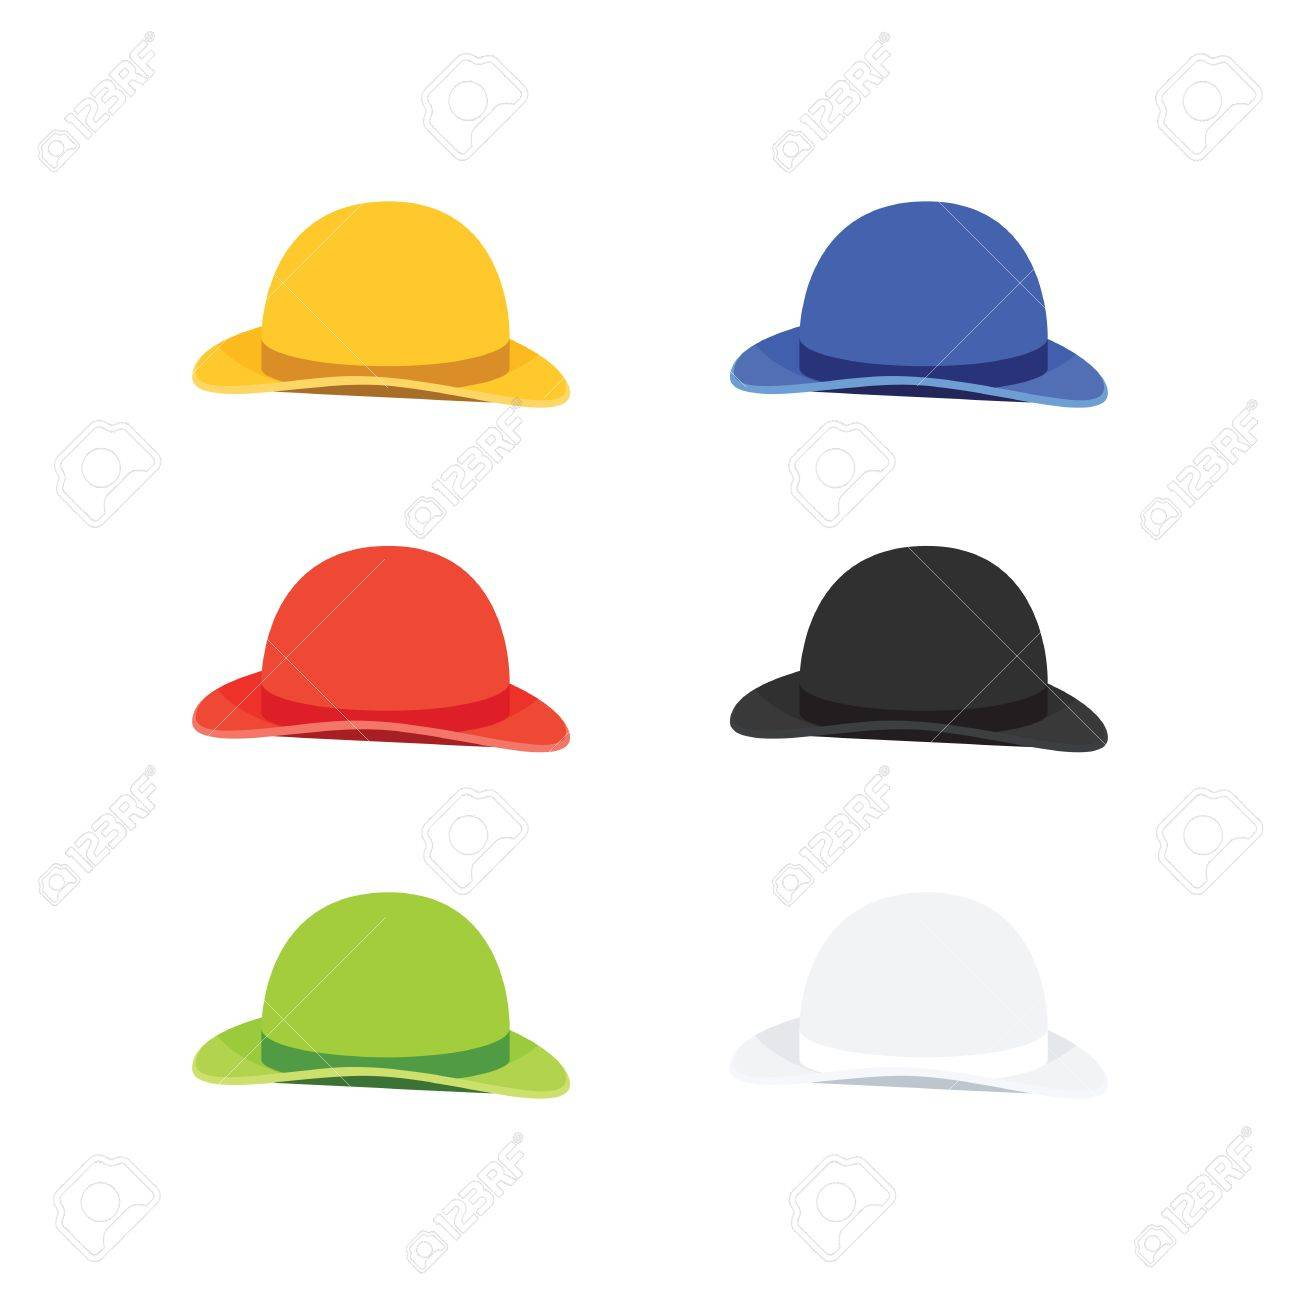 7728ecb1343a9 Vector - Vector Illustration of Six Colors Bowler or Derby Hat